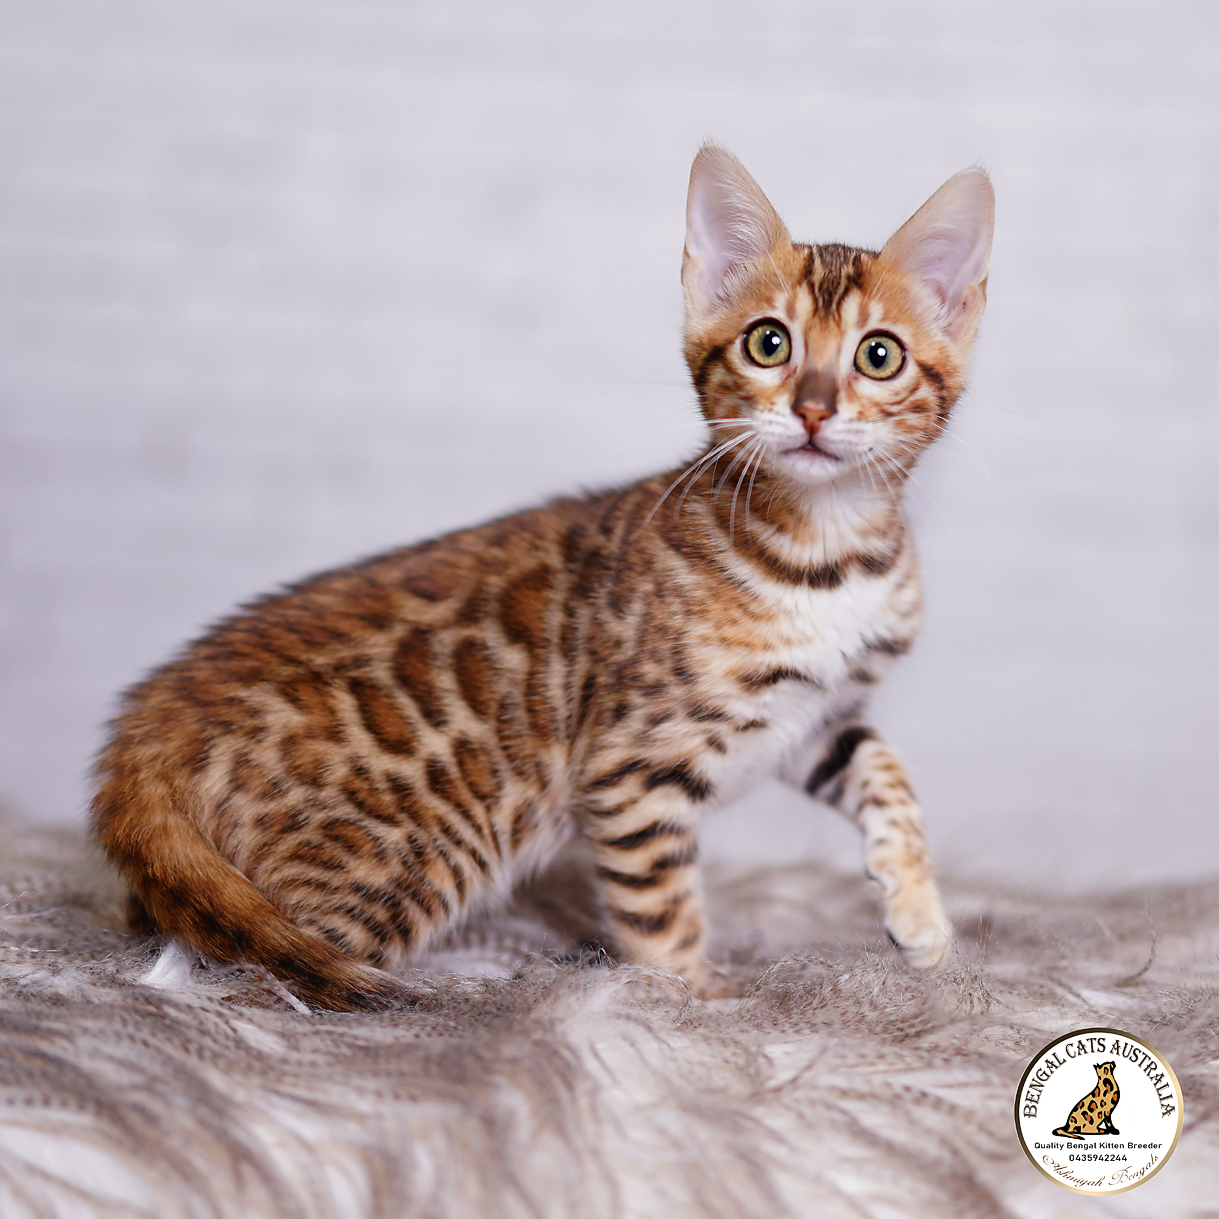 Bengal kittens-Available For Sale-BRF-1